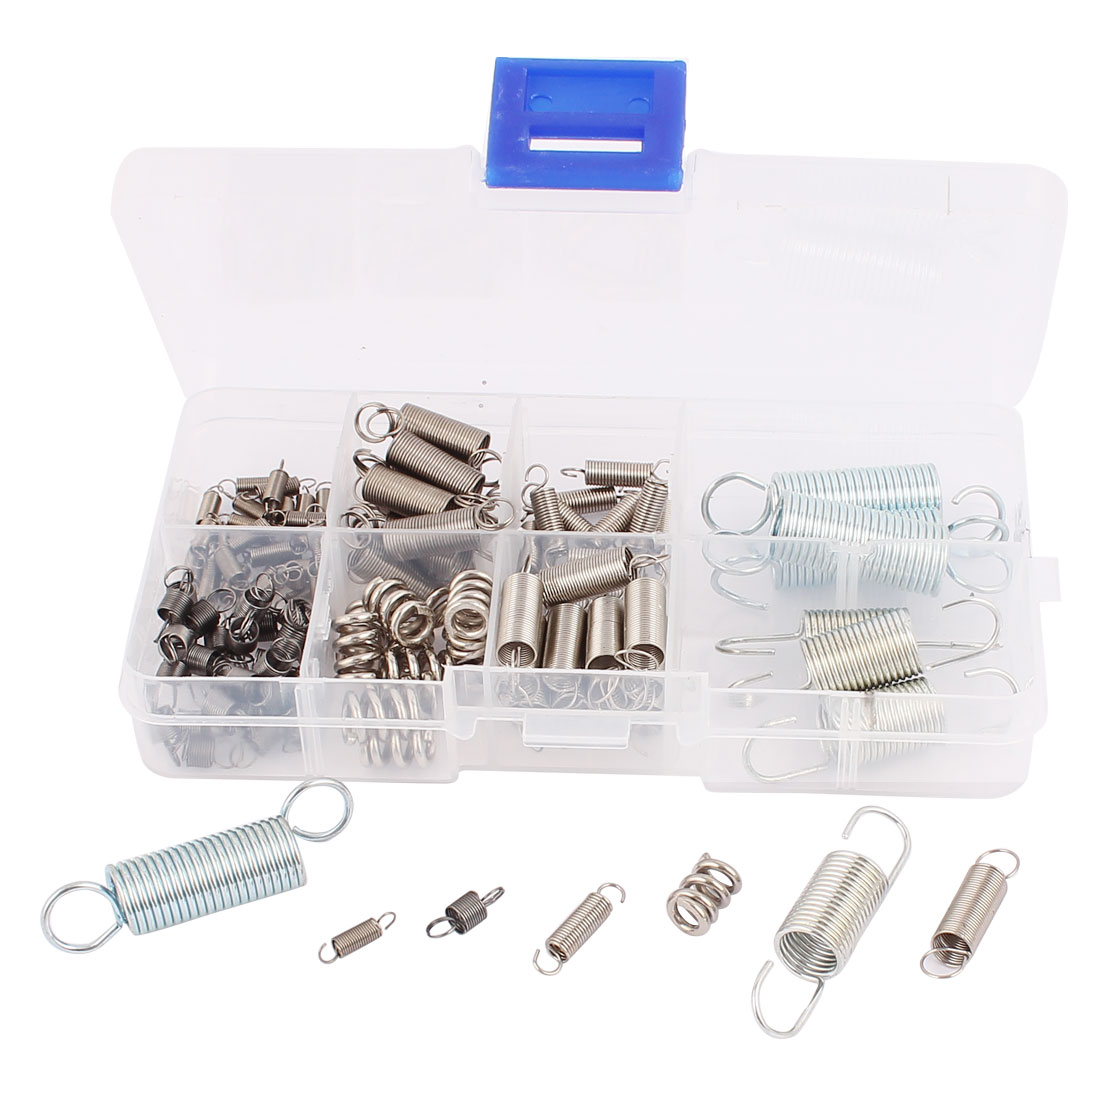 100Pcs Assorted Nickel plating Stainless steel Tension Compression Spring Box Packed Kit